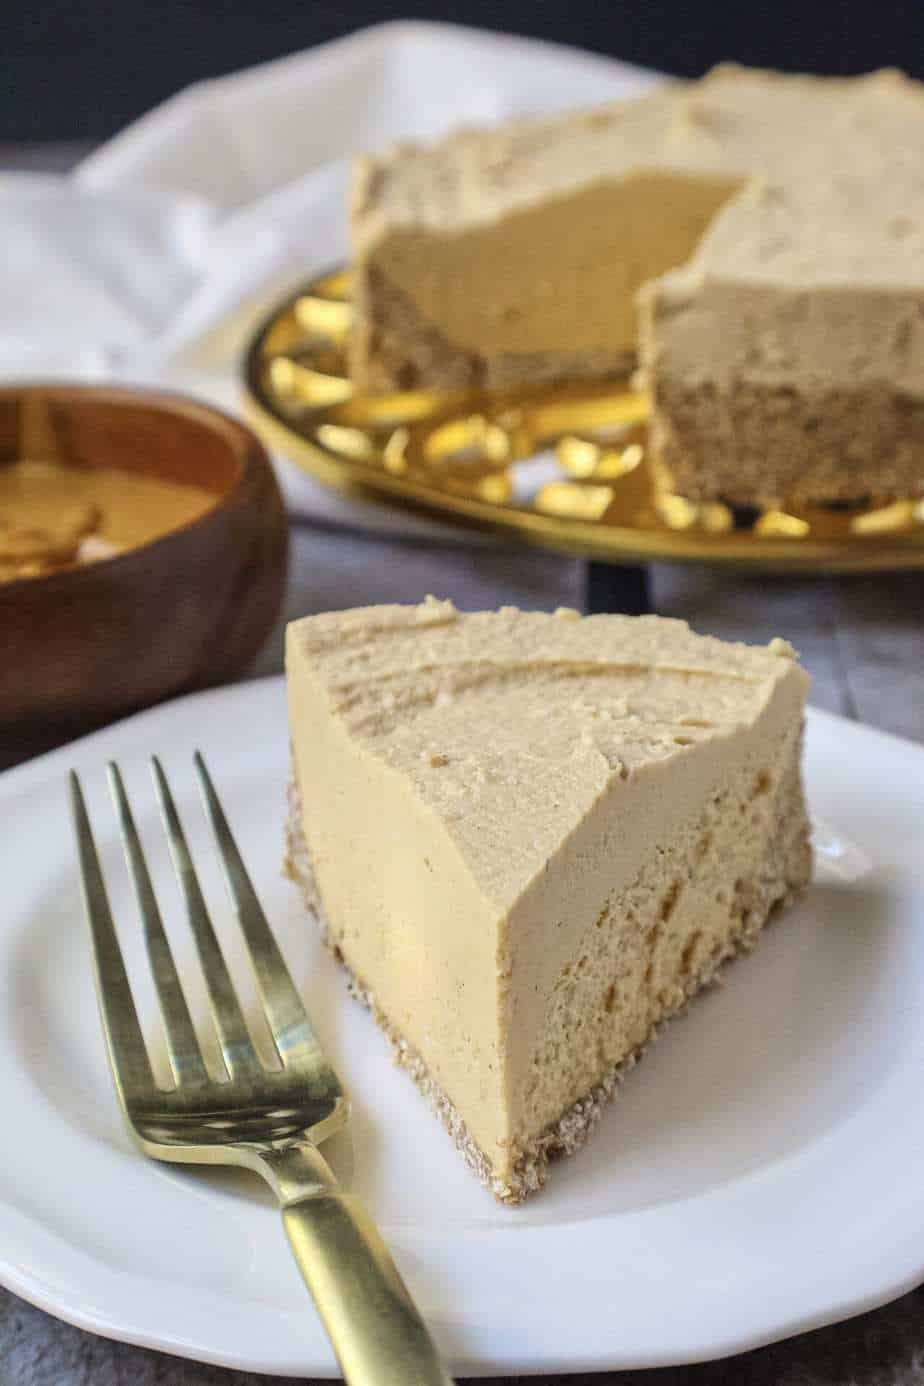 vegan peanut butter cheesecake on gold trivet with a slice of cheesecake on a small white plate with fork